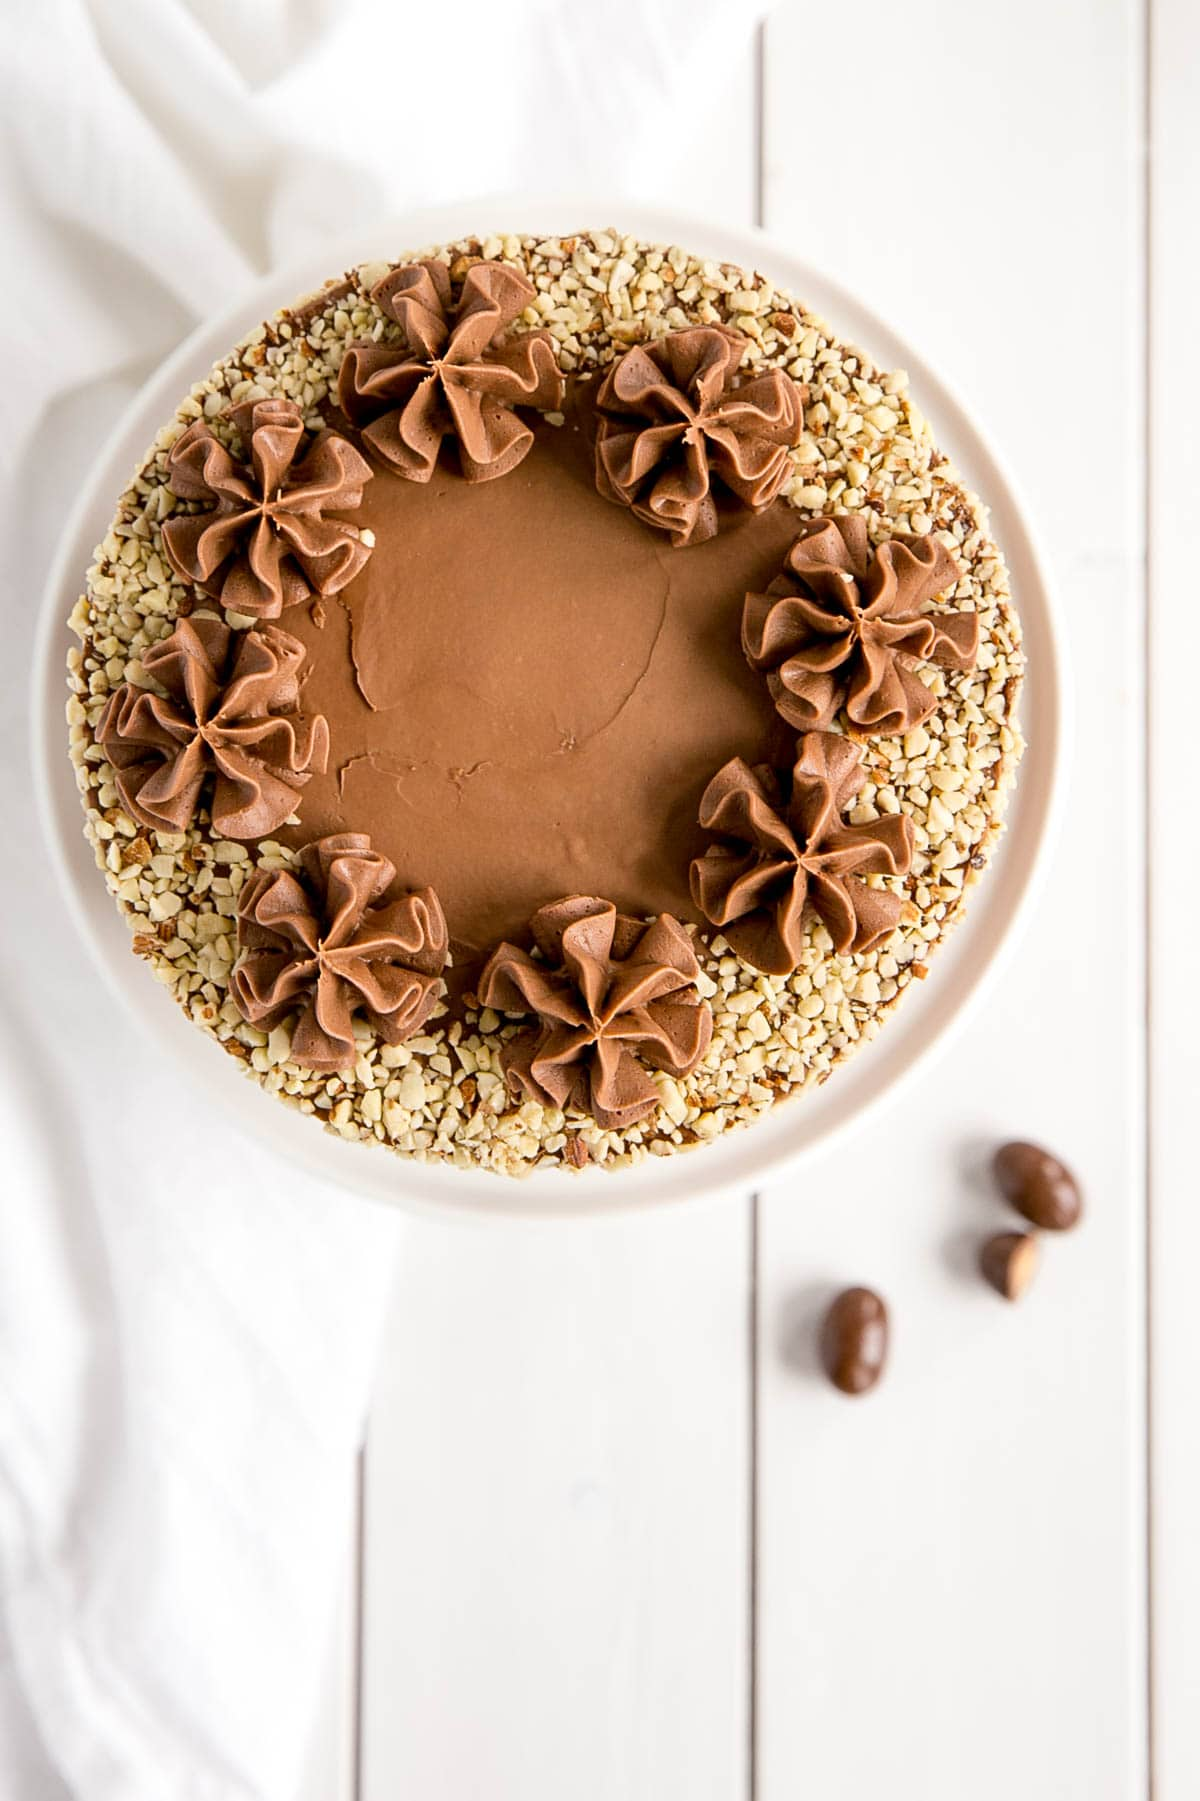 Overhead picture of the Milk Chocolate Almond Cake.